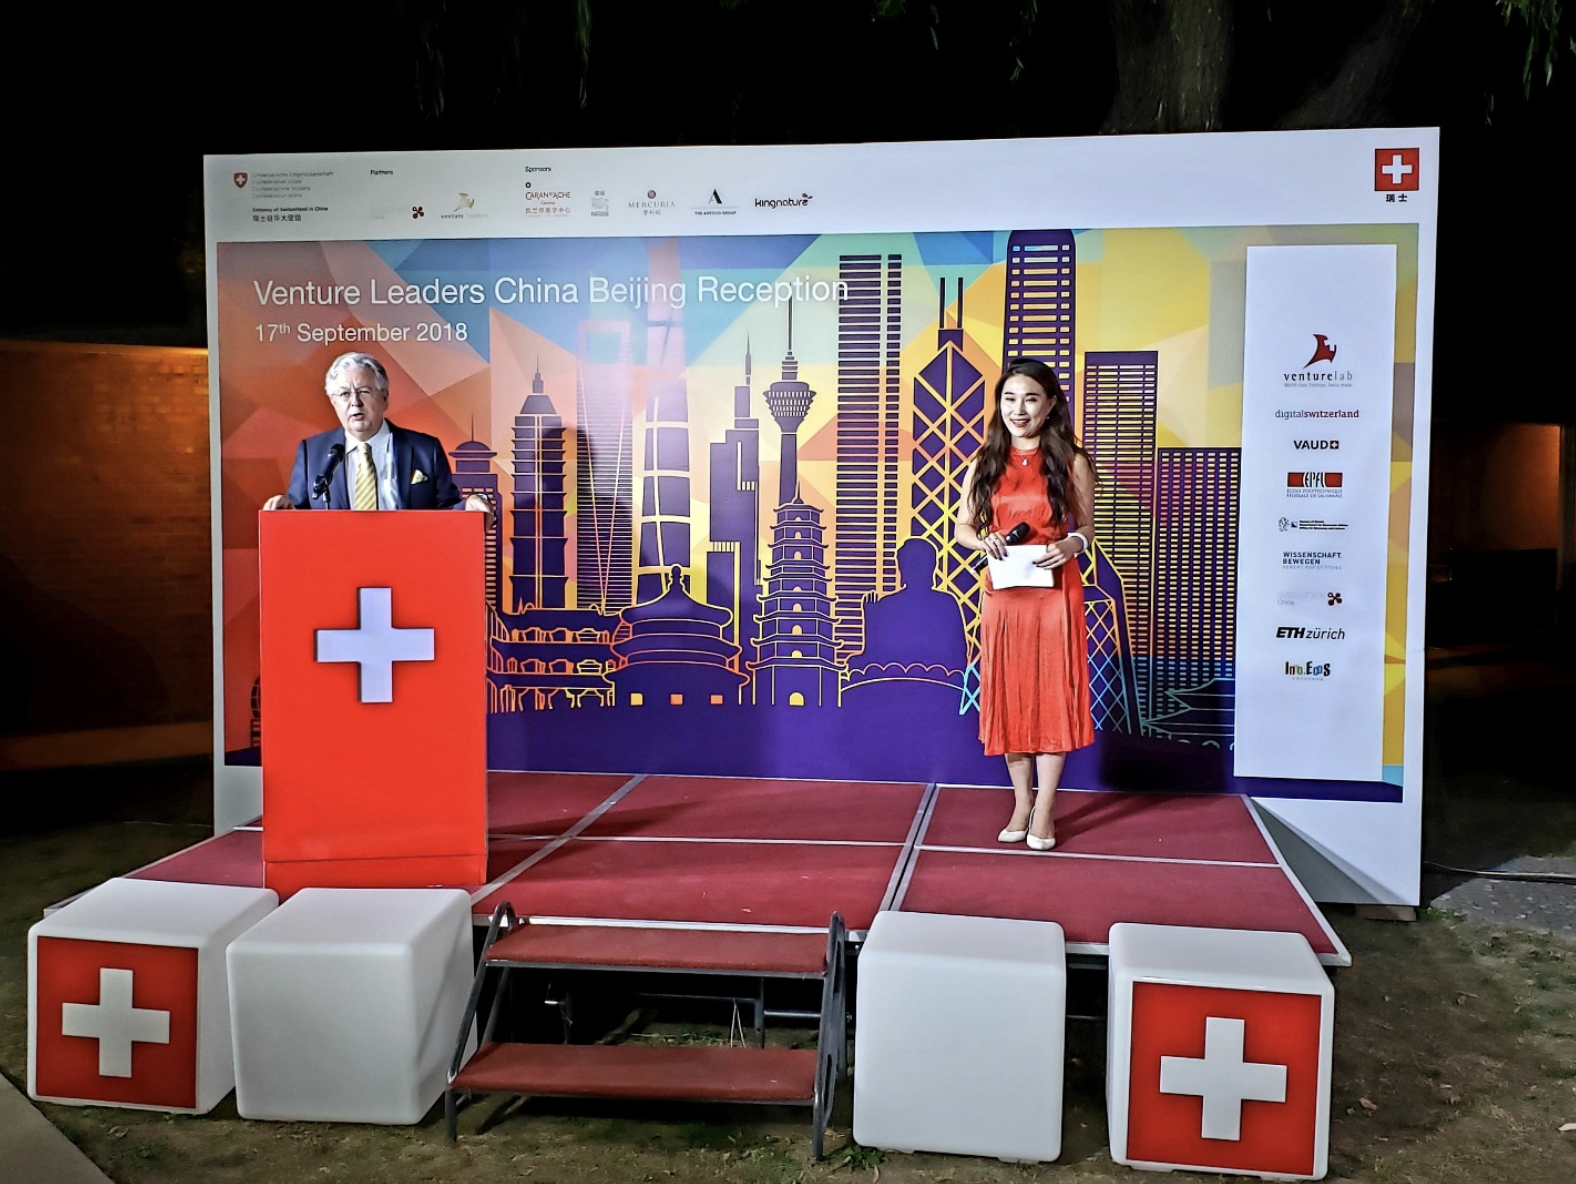 His Excellency Swiss Ambassador Jean-Jacques de Dardel's opening words during the pitch at the Swiss Embassy in Beijing